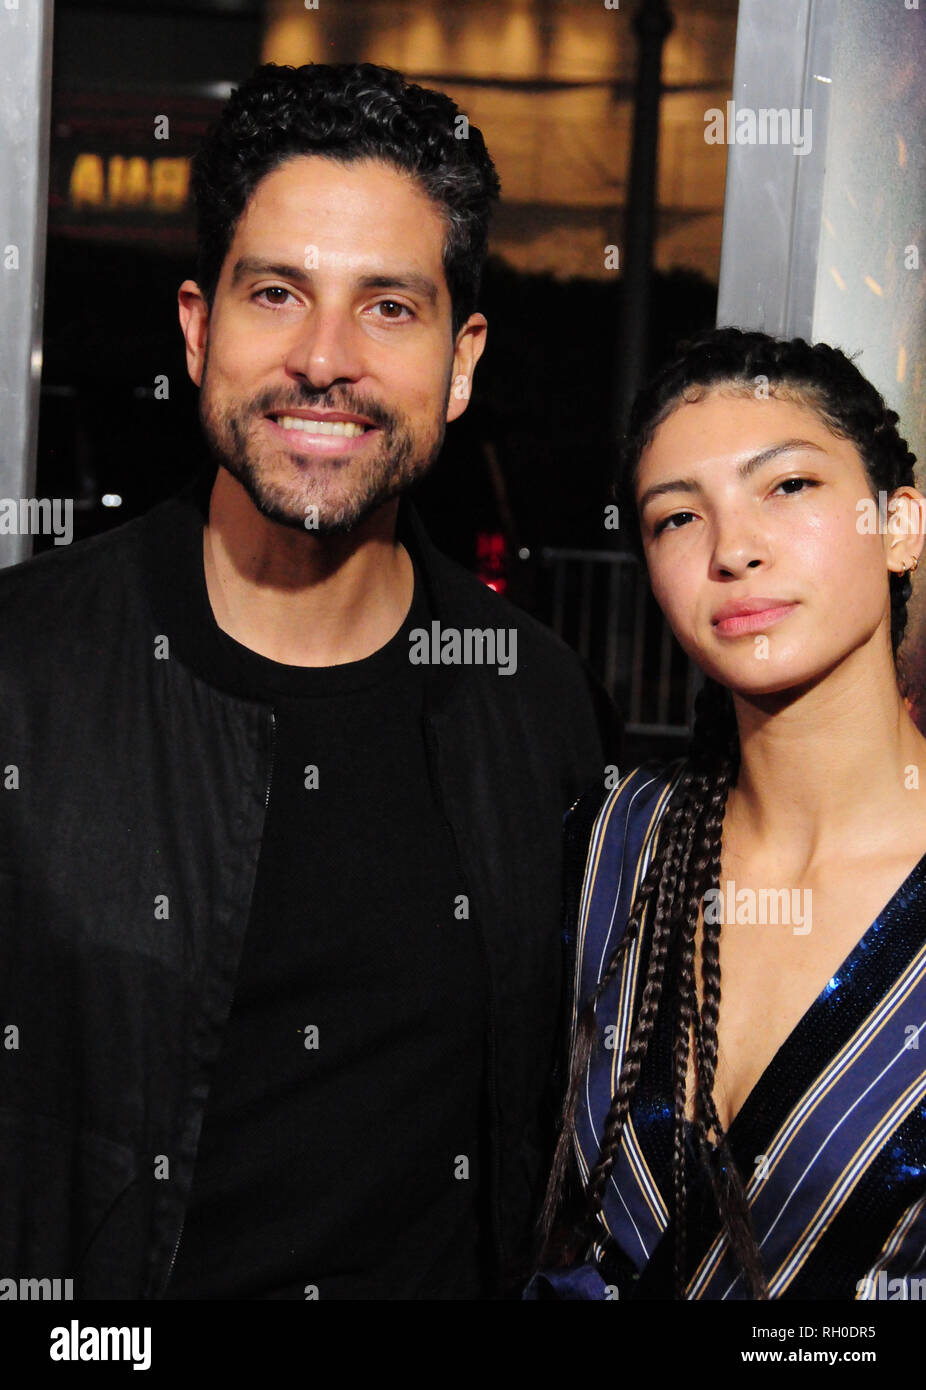 Adam Rodriguez And Wife Stock Photos & Adam Rodriguez And Wife Stock